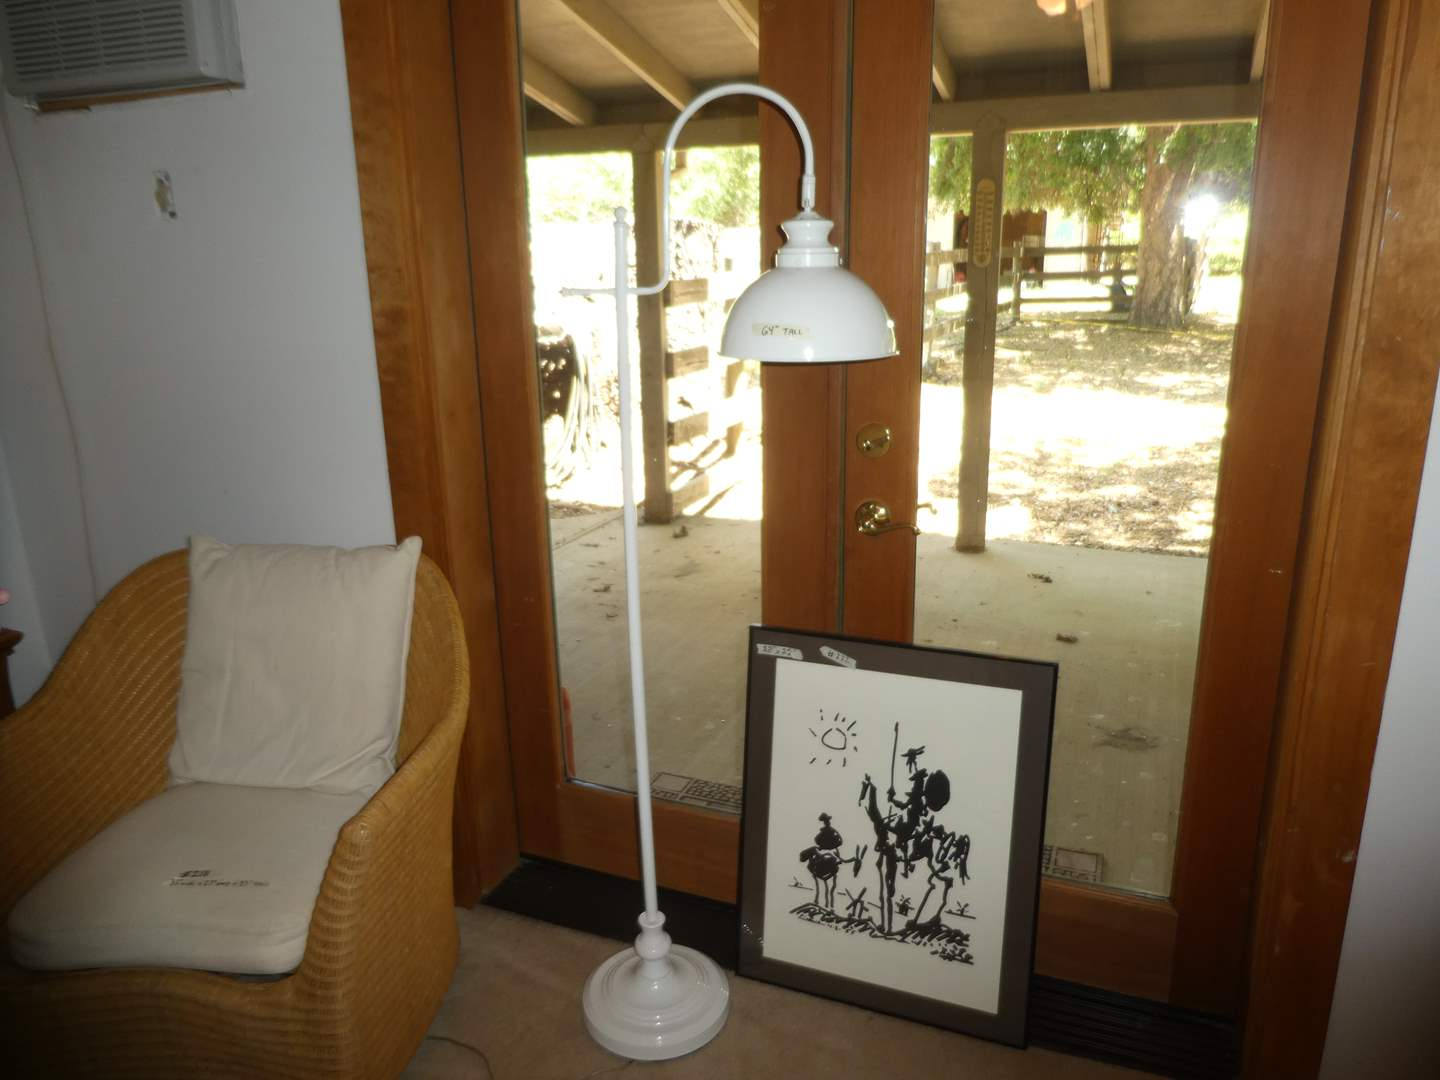 Lot # 222 - Unique Framed Print and Vintage Style Floor Lamp (main image)